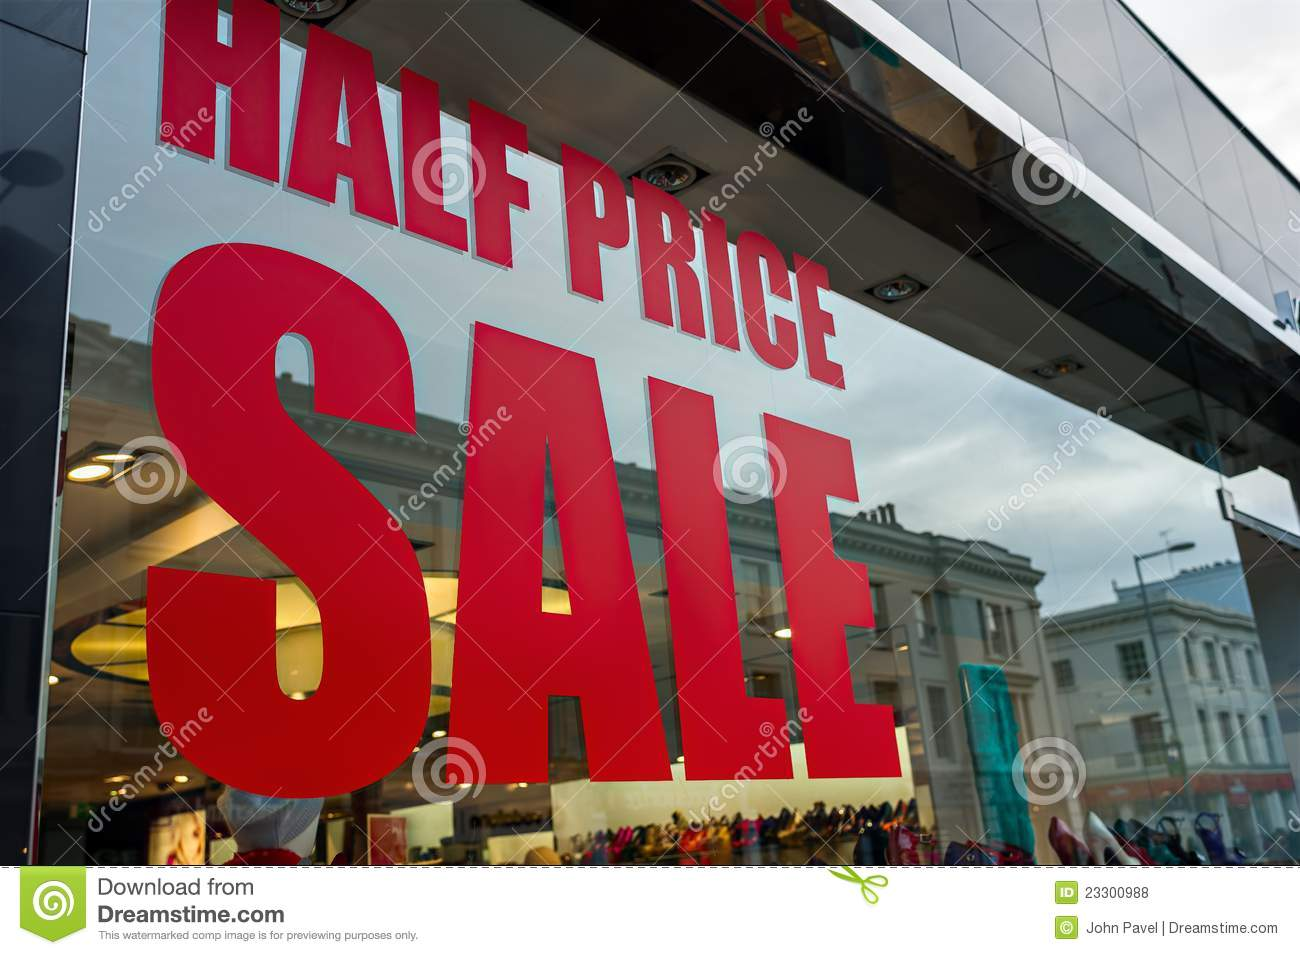 Businesses for Sale in + categories and + countries. Buy Business or Sell Business today at the #1 Business for Sale Marketplace!